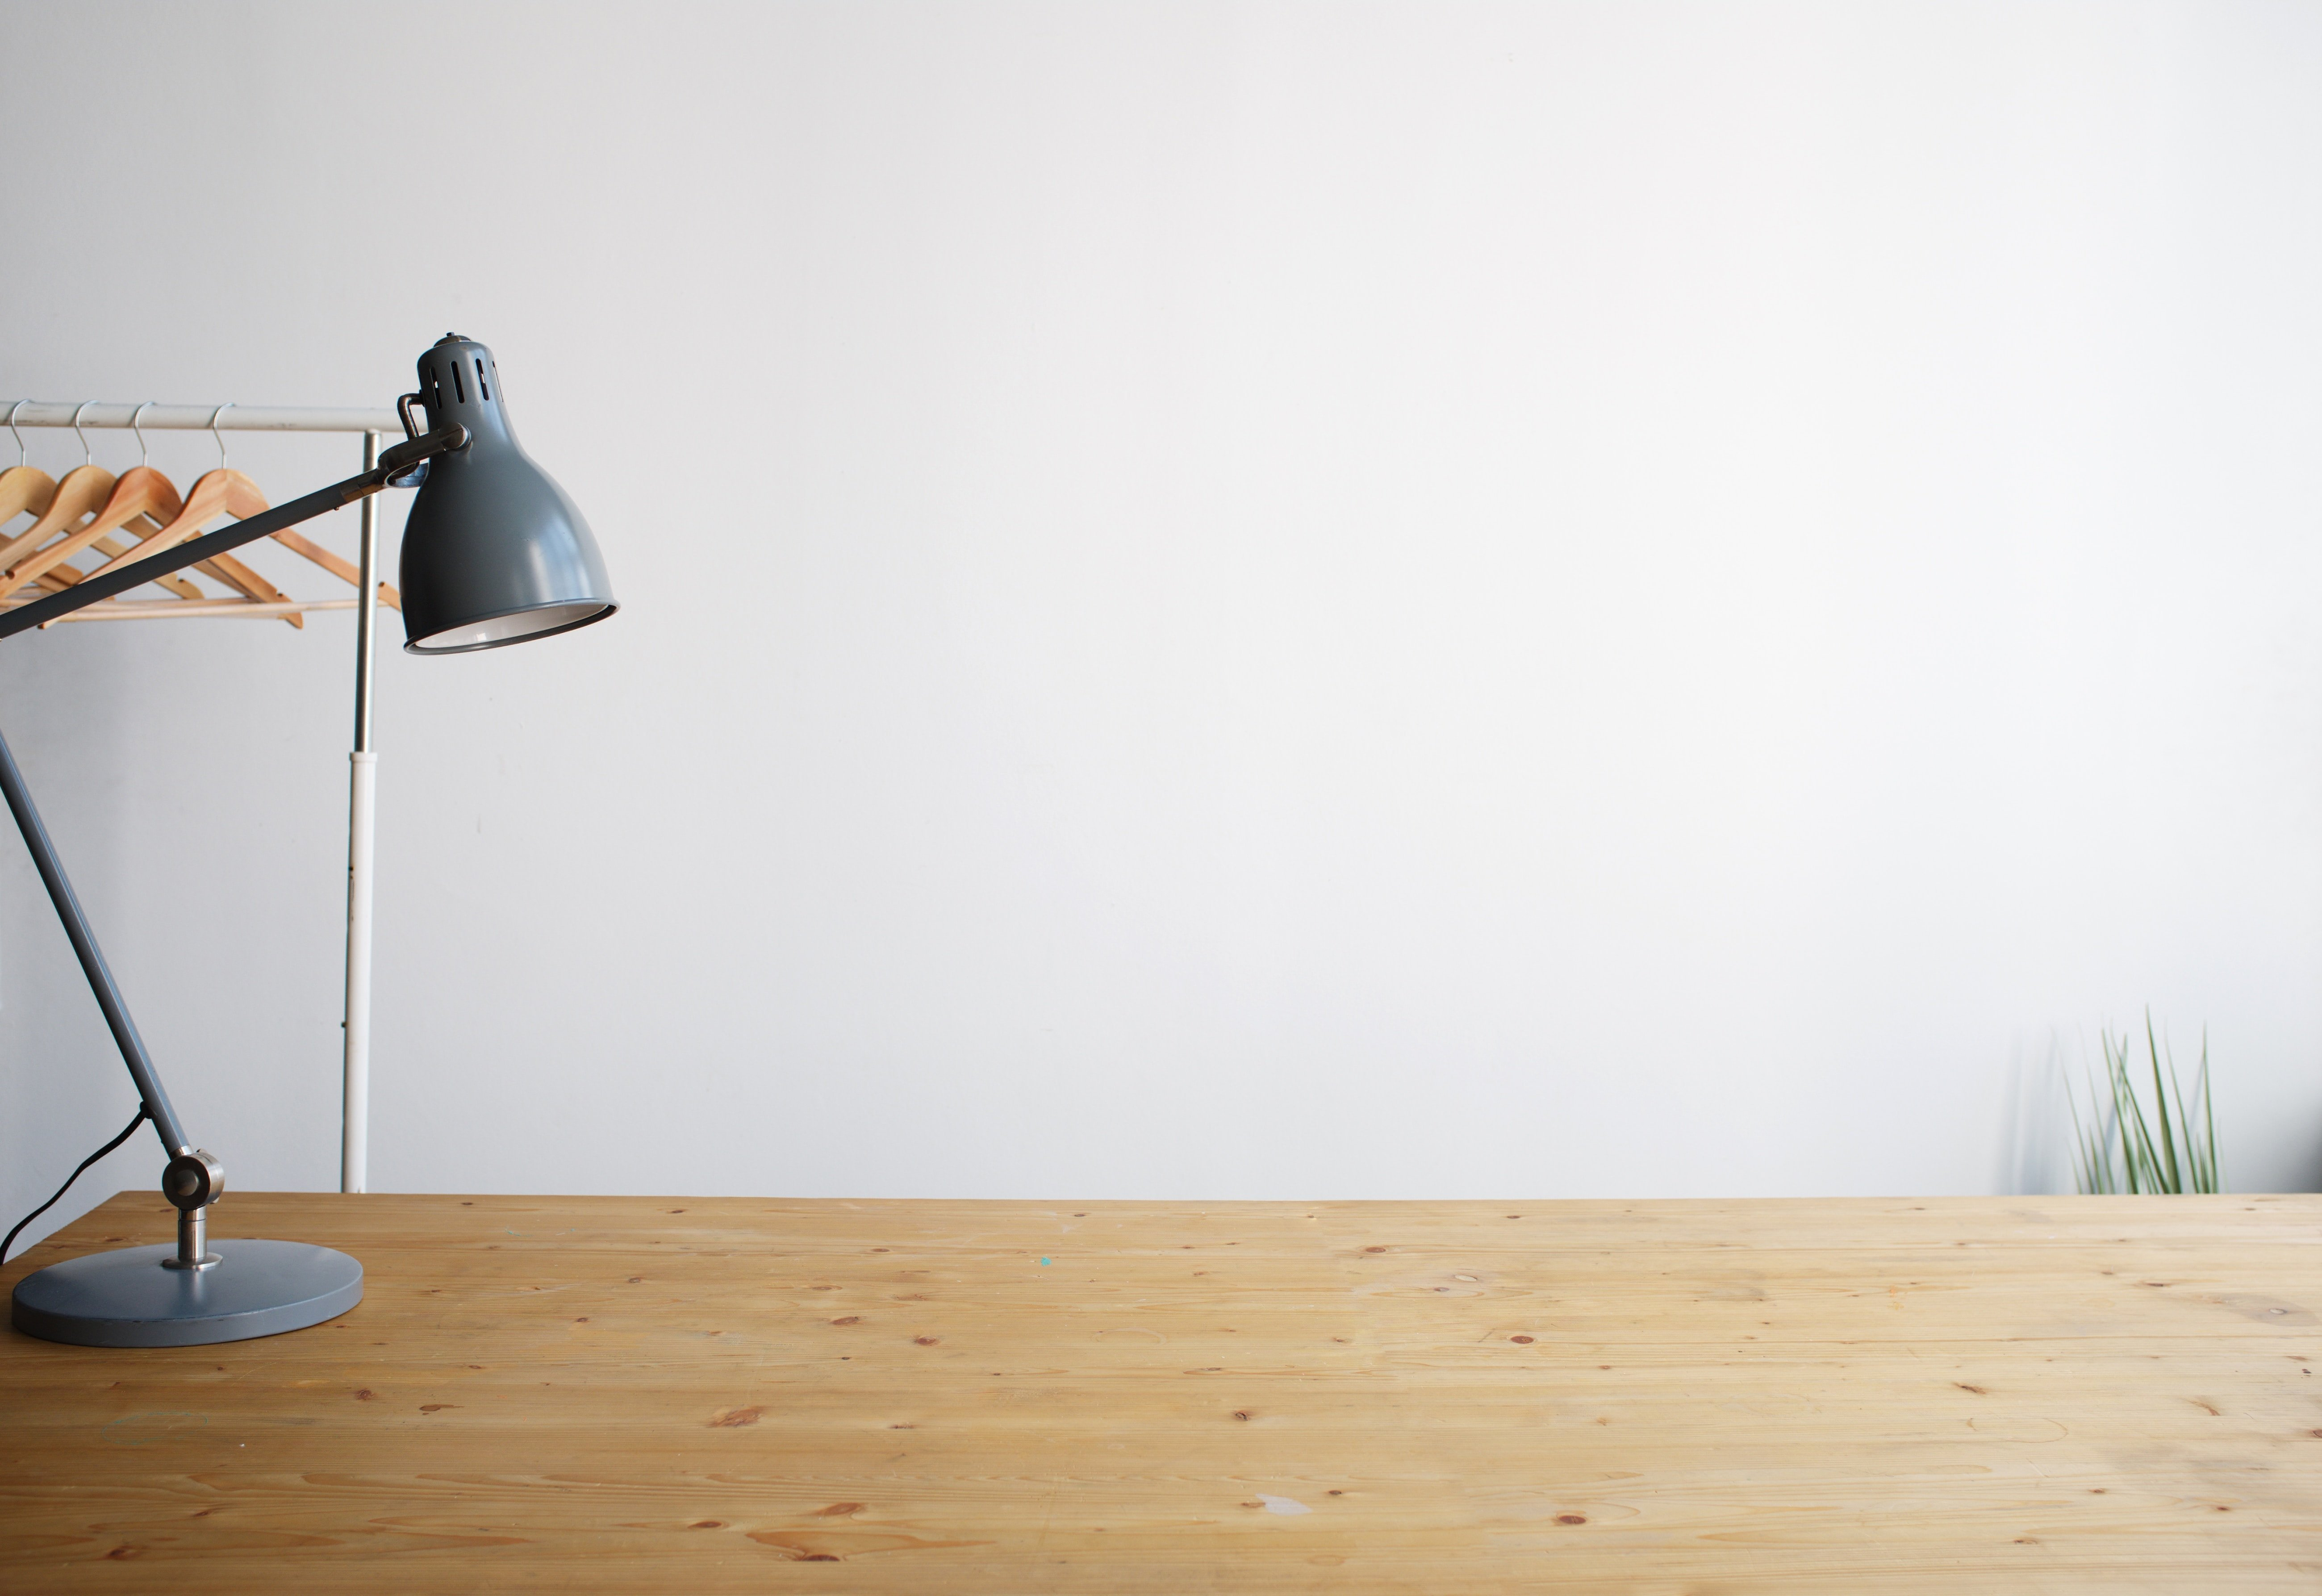 items minimalists don't need to buy